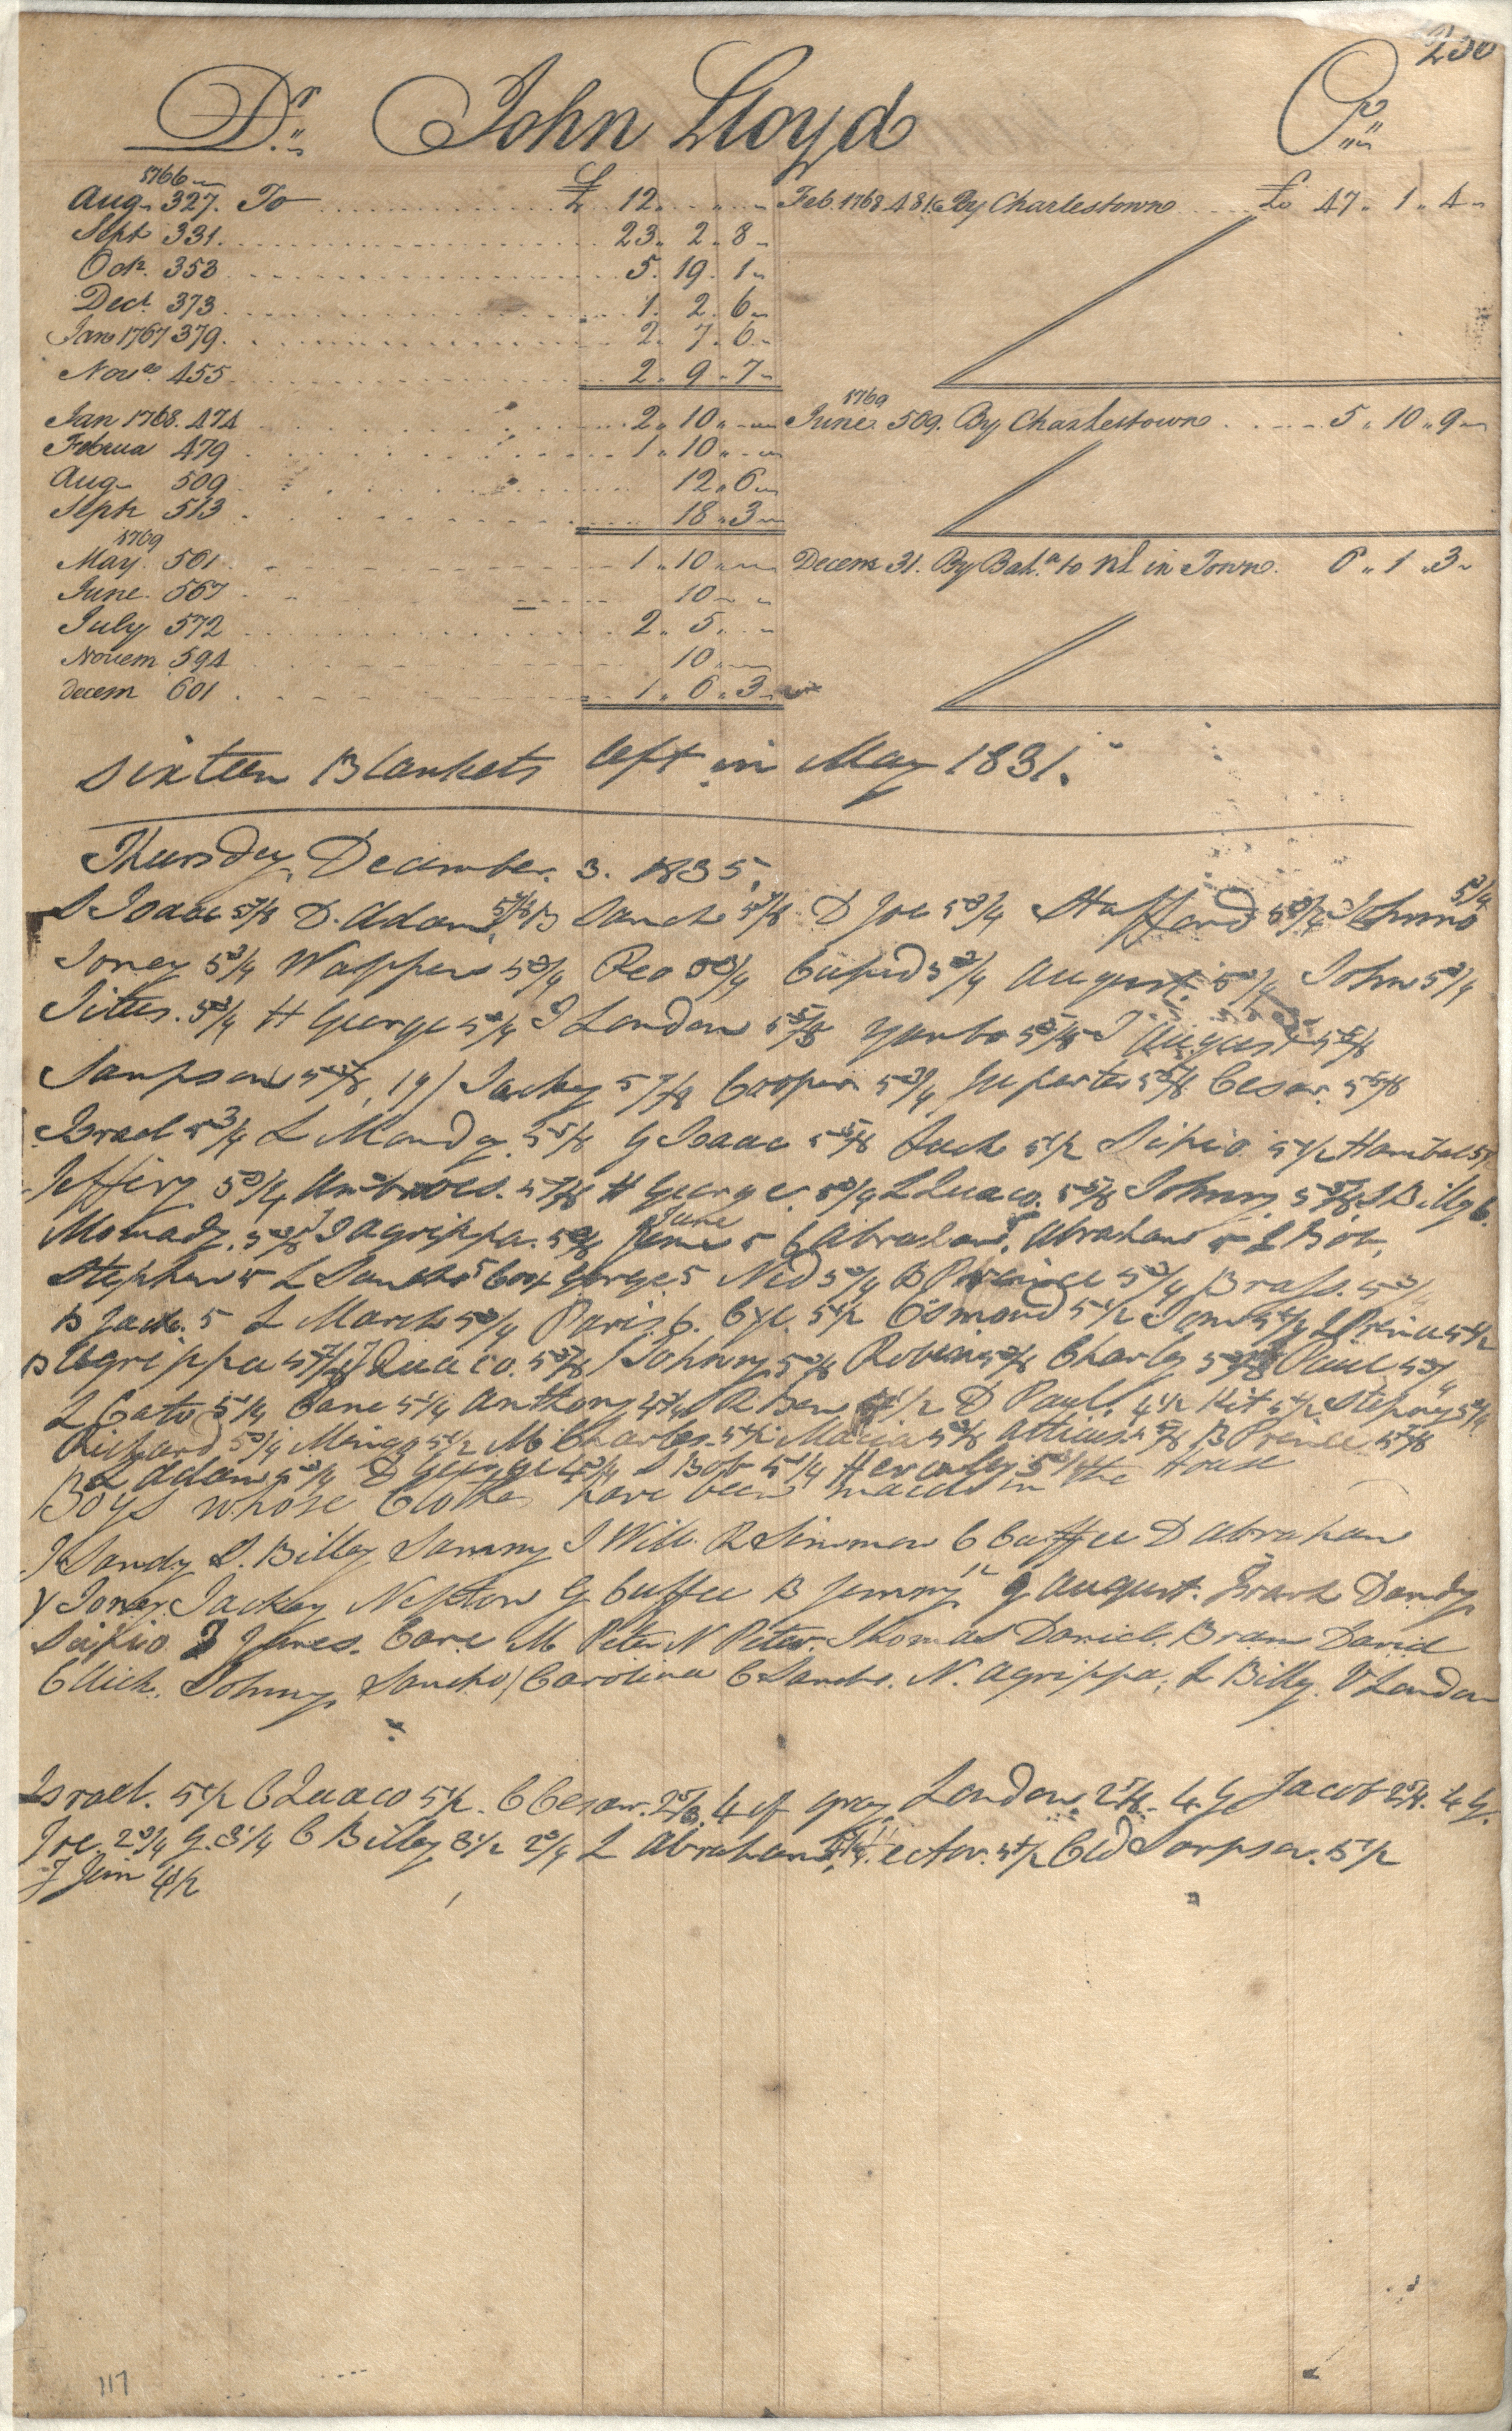 Plowden Weston's Business Ledger, page 256